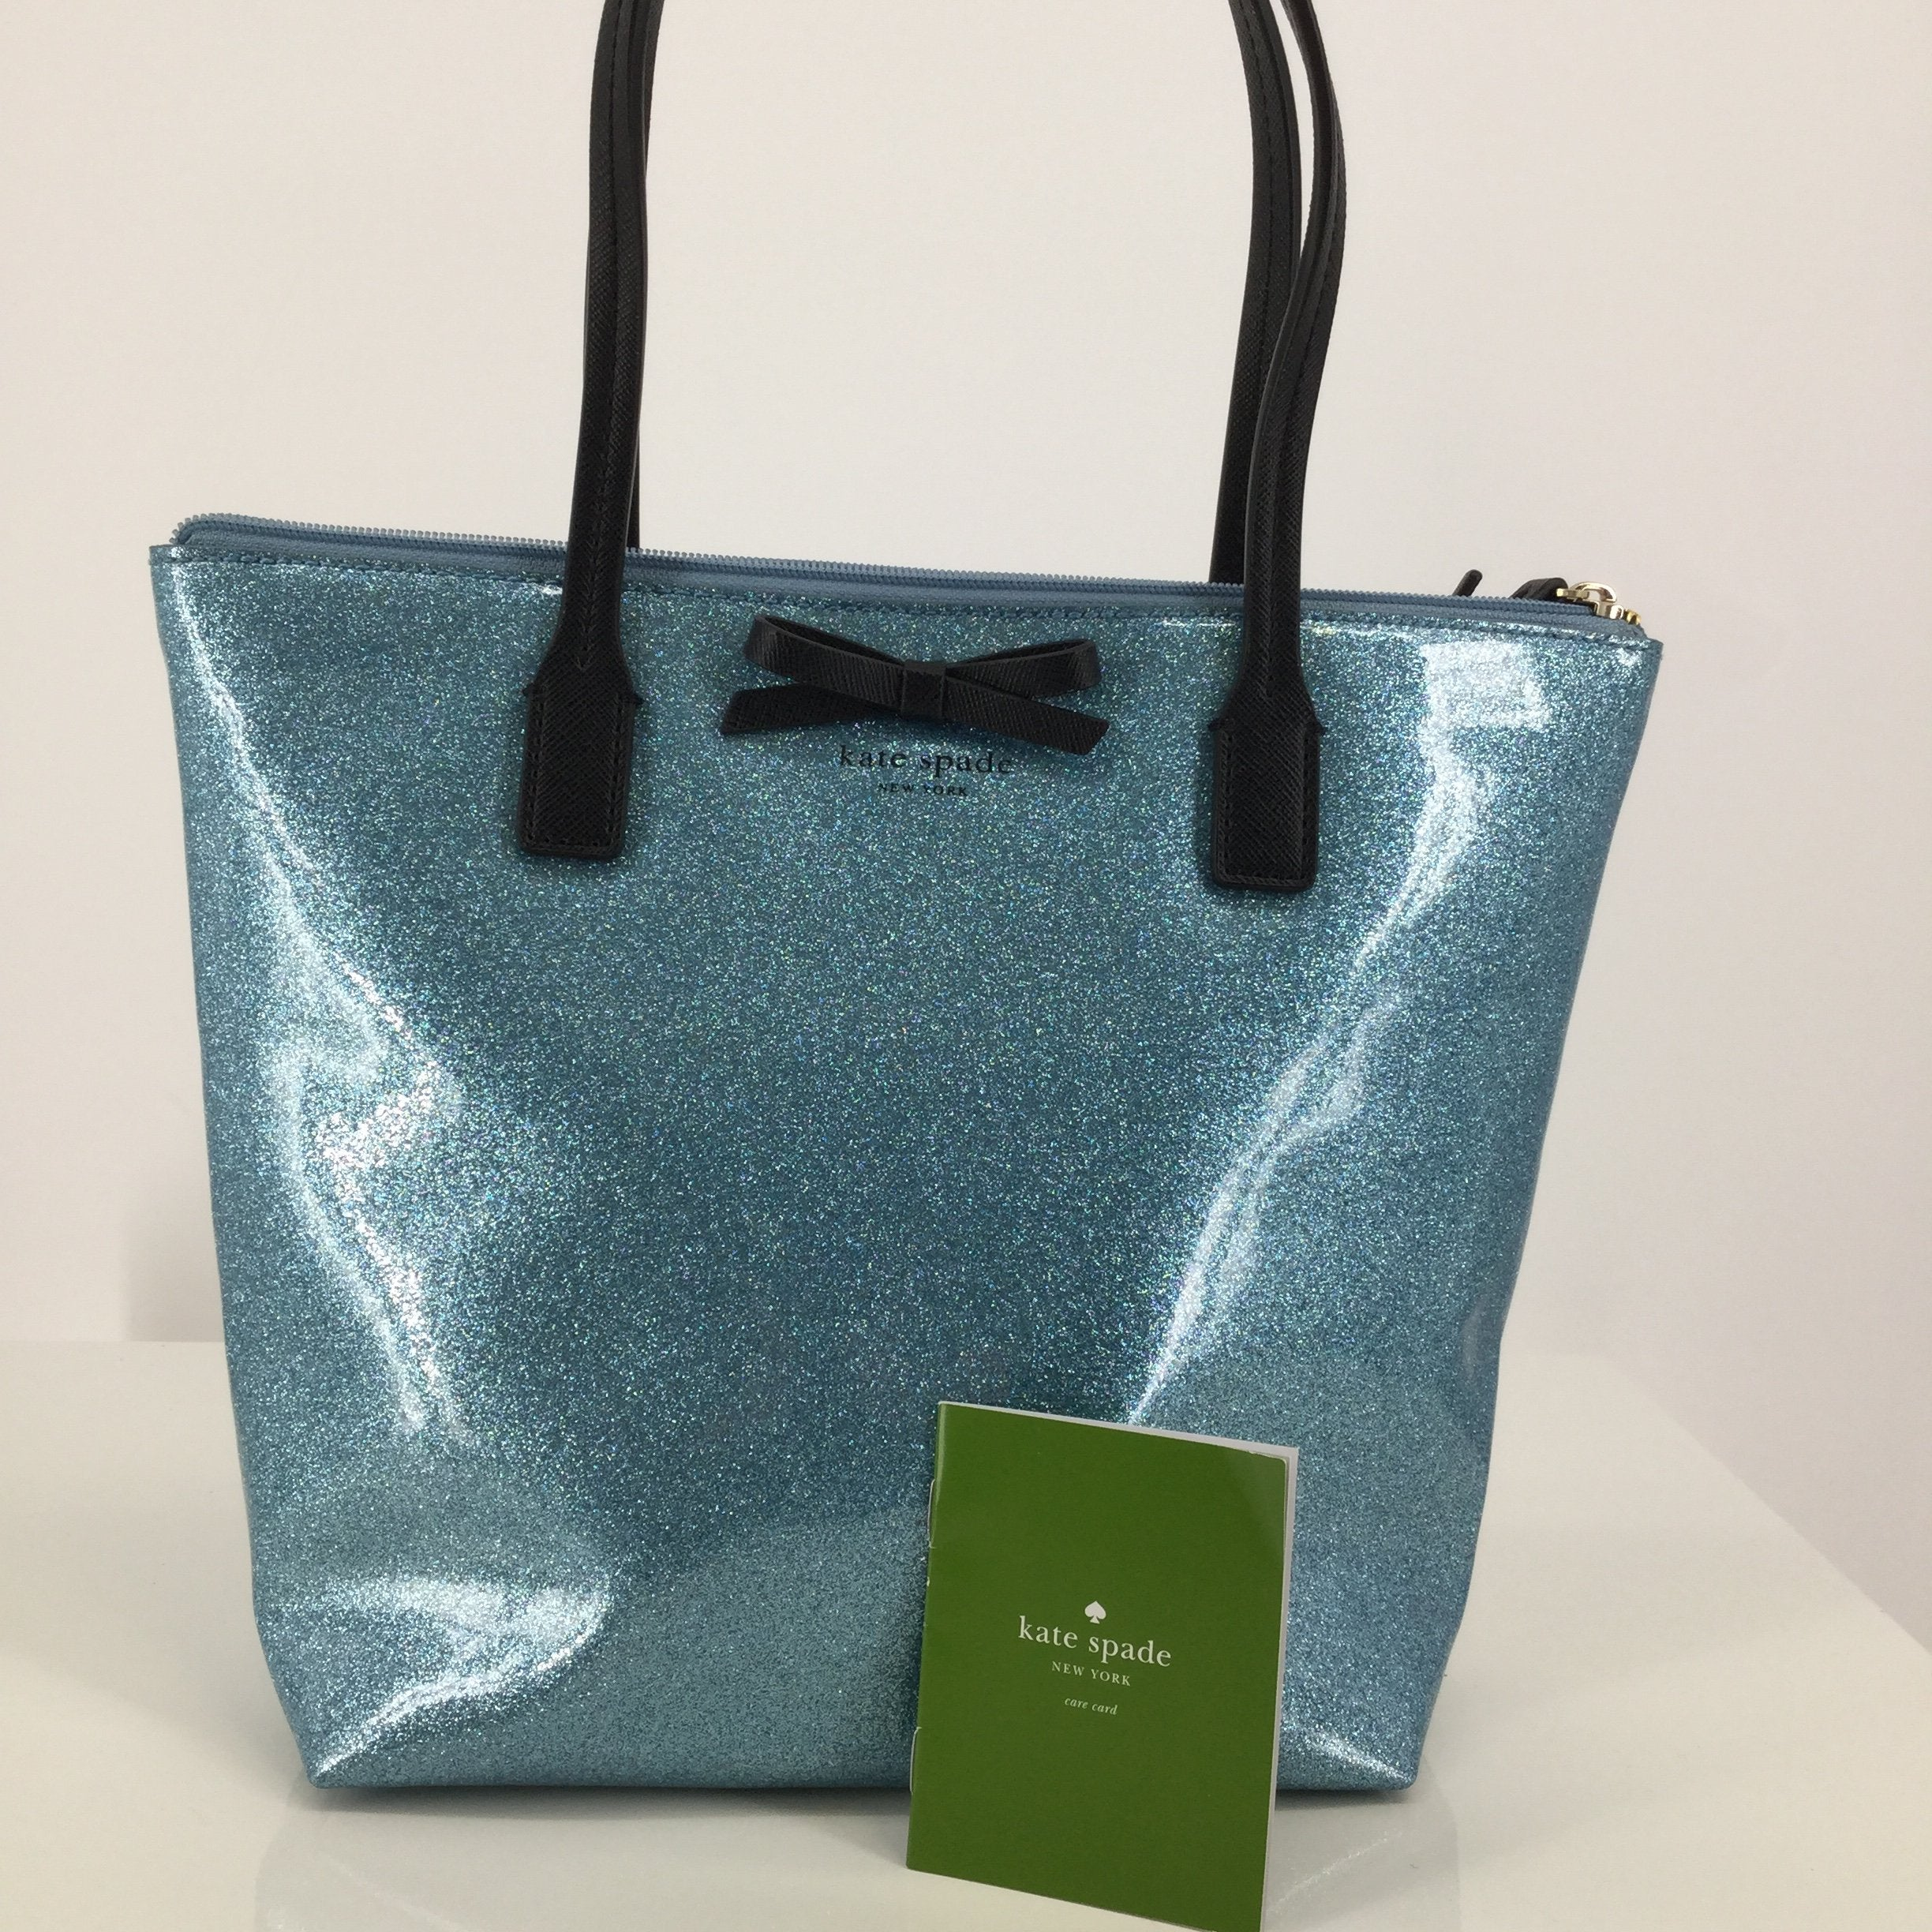 Kate Spade Blue Glitter Designer Handbag - <P>THIS SPARKLY KATE SPADE IS ADORABLE! IT IS LIGHT BLUE WITH BLACK STRAPS AND A BLACK BOW ON THE FRONT. INSIDE, THERE IS A ZIPPER POCKET AND TWO SLIP POCKETS. THIS BAG IS IN PERFECT CONDITION AND LOOKS LIKE IT HAS NEVER BEEN USED!</P>